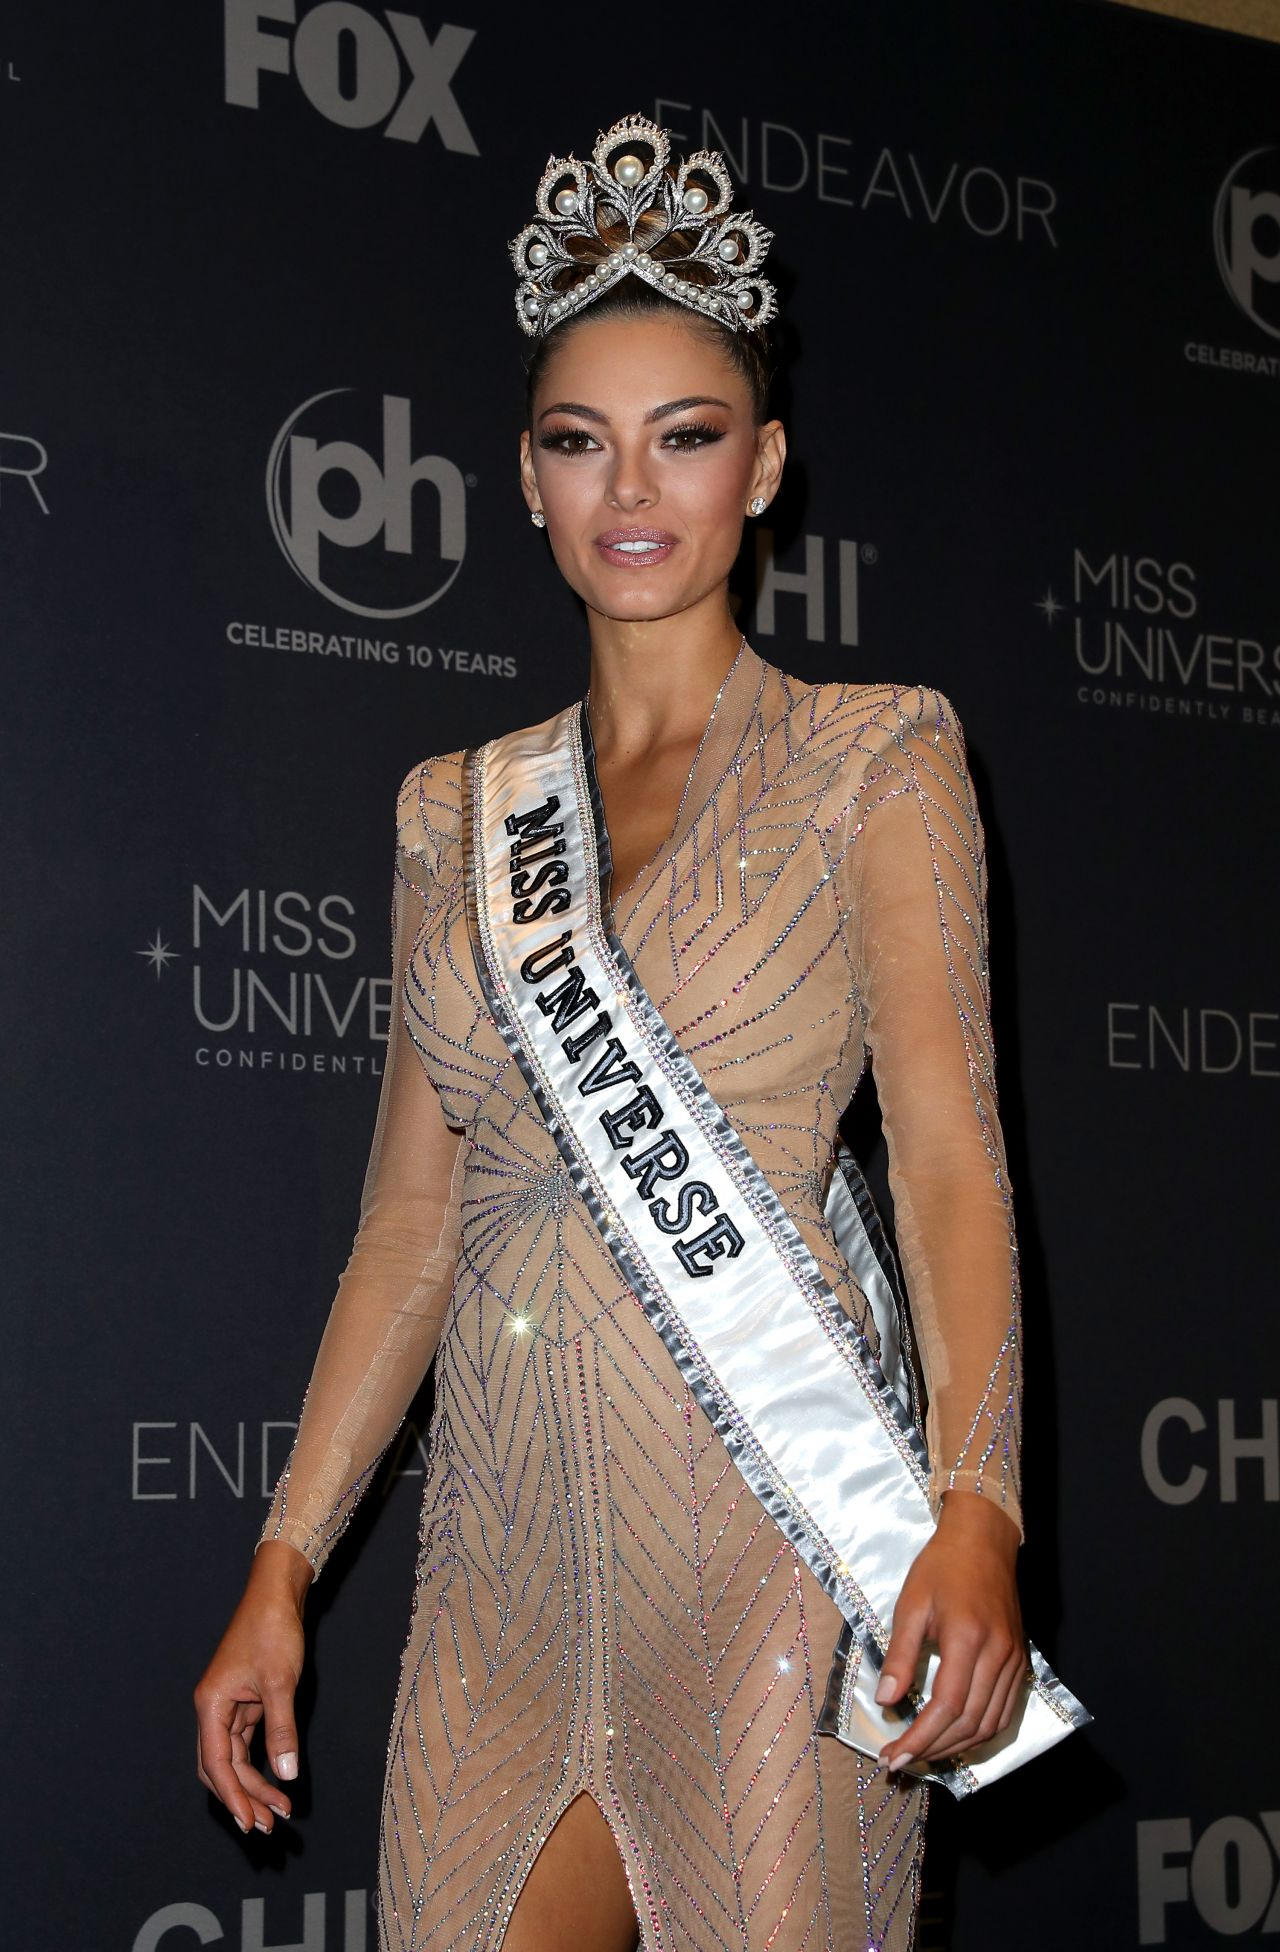 Miss Universe 2018 Demi Leigh Nel Peters >> Demi-Leigh Nel-Peters – Miss Universe 2017 in Las Vegas